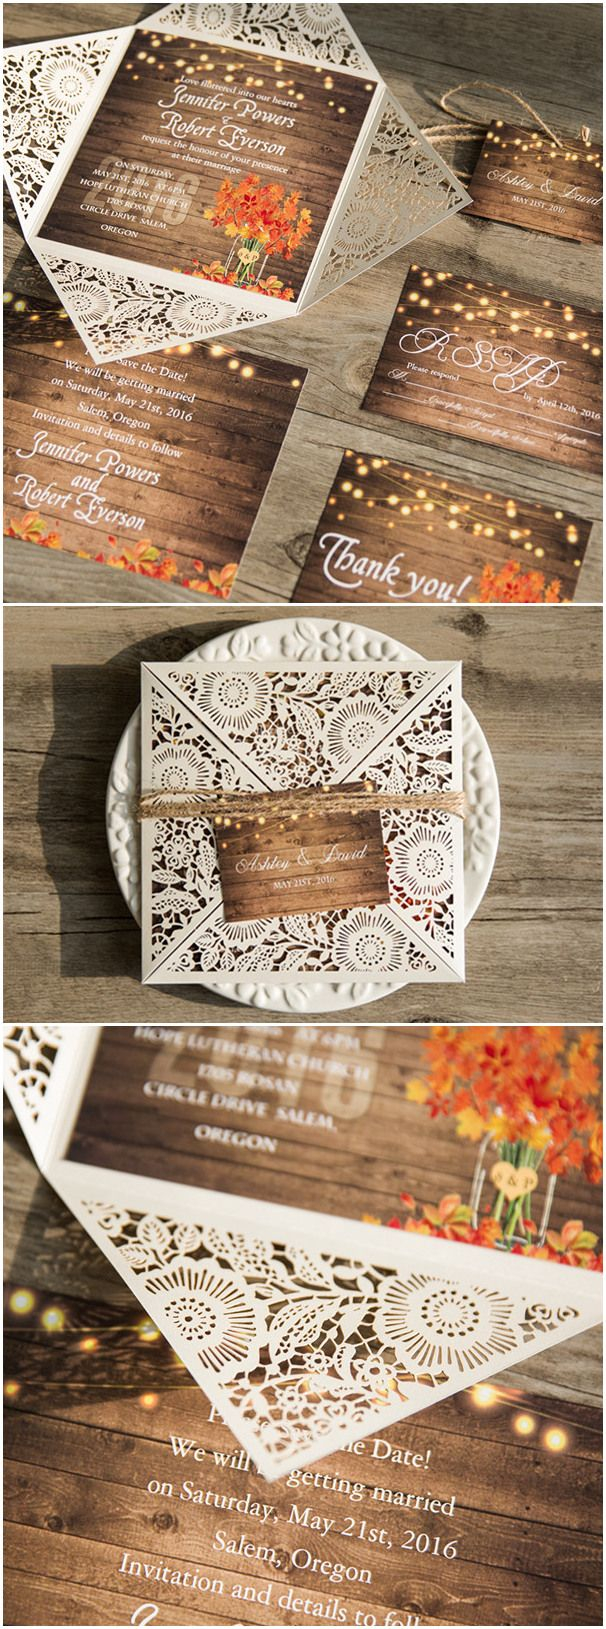 Country Rustic Wedding Invitations Rustic Stringlights Maple Leaf Laser Cut Wedding Invitations With